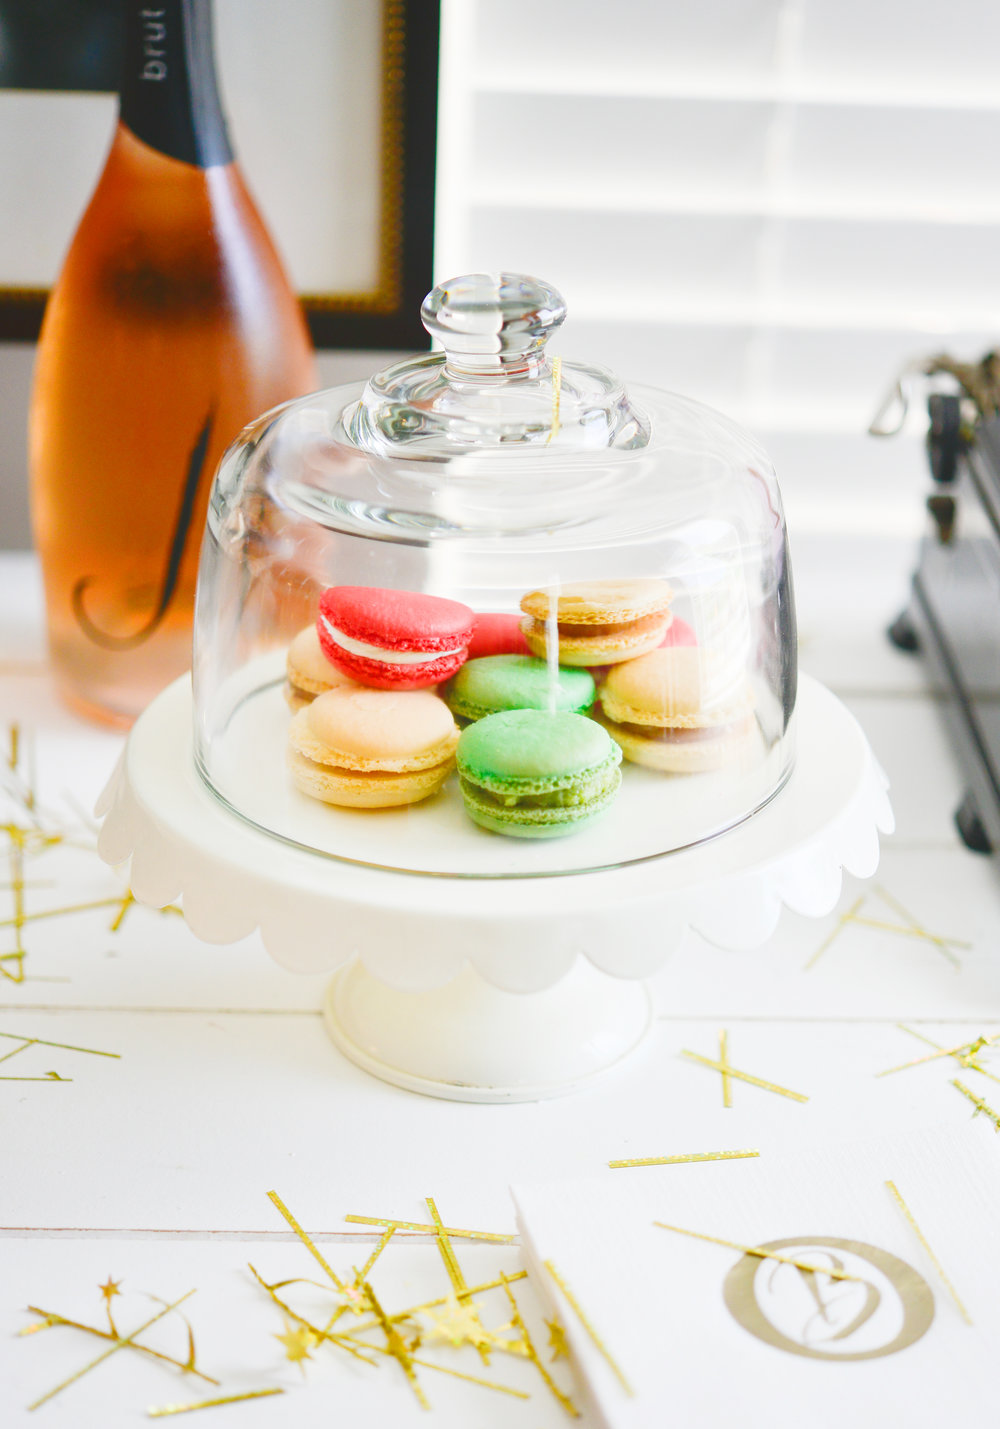 My Splendid Living | Mimosa Bar and Macaroons